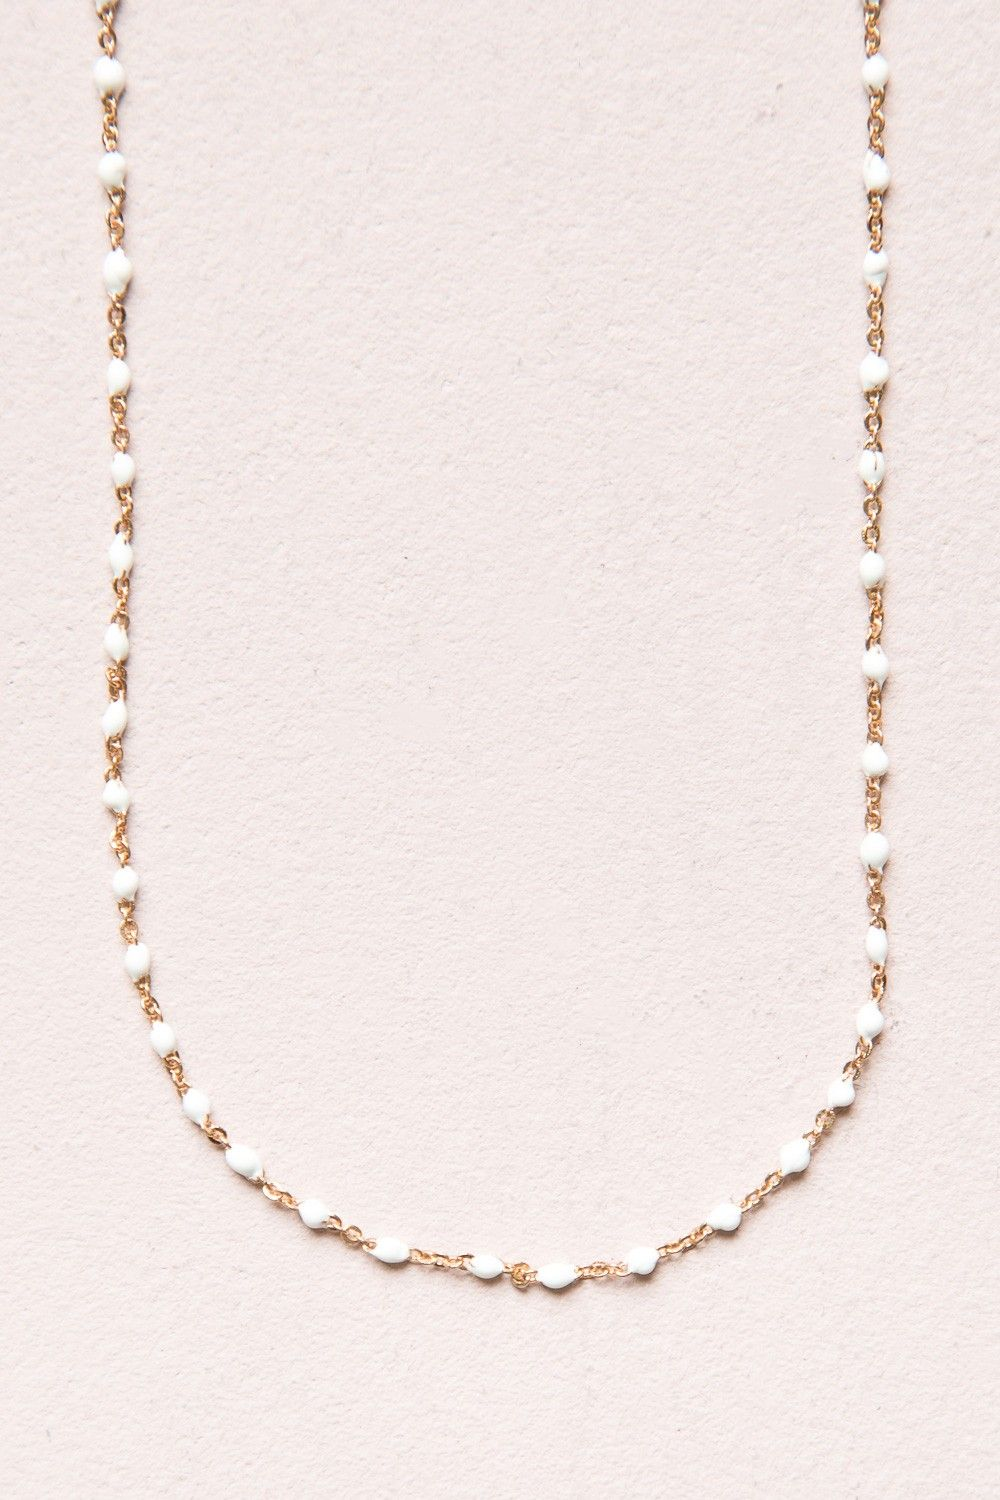 82471b1f350 White Bead and Gold Necklace | Jewelry in 2019 | Pinterest | Jewelry ...